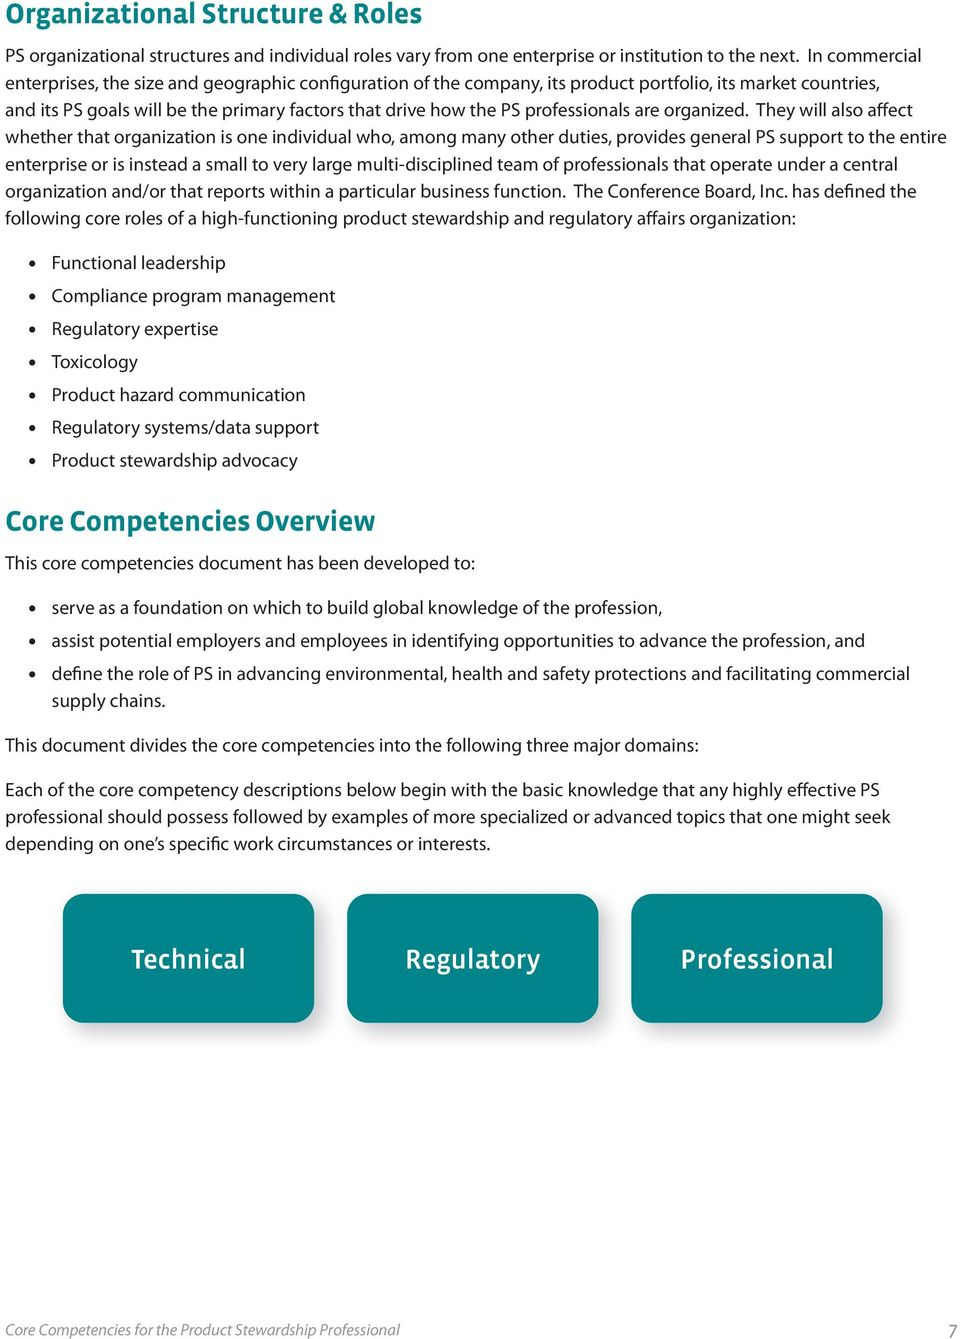 Core Competencies  for the Product Stewardship Professional